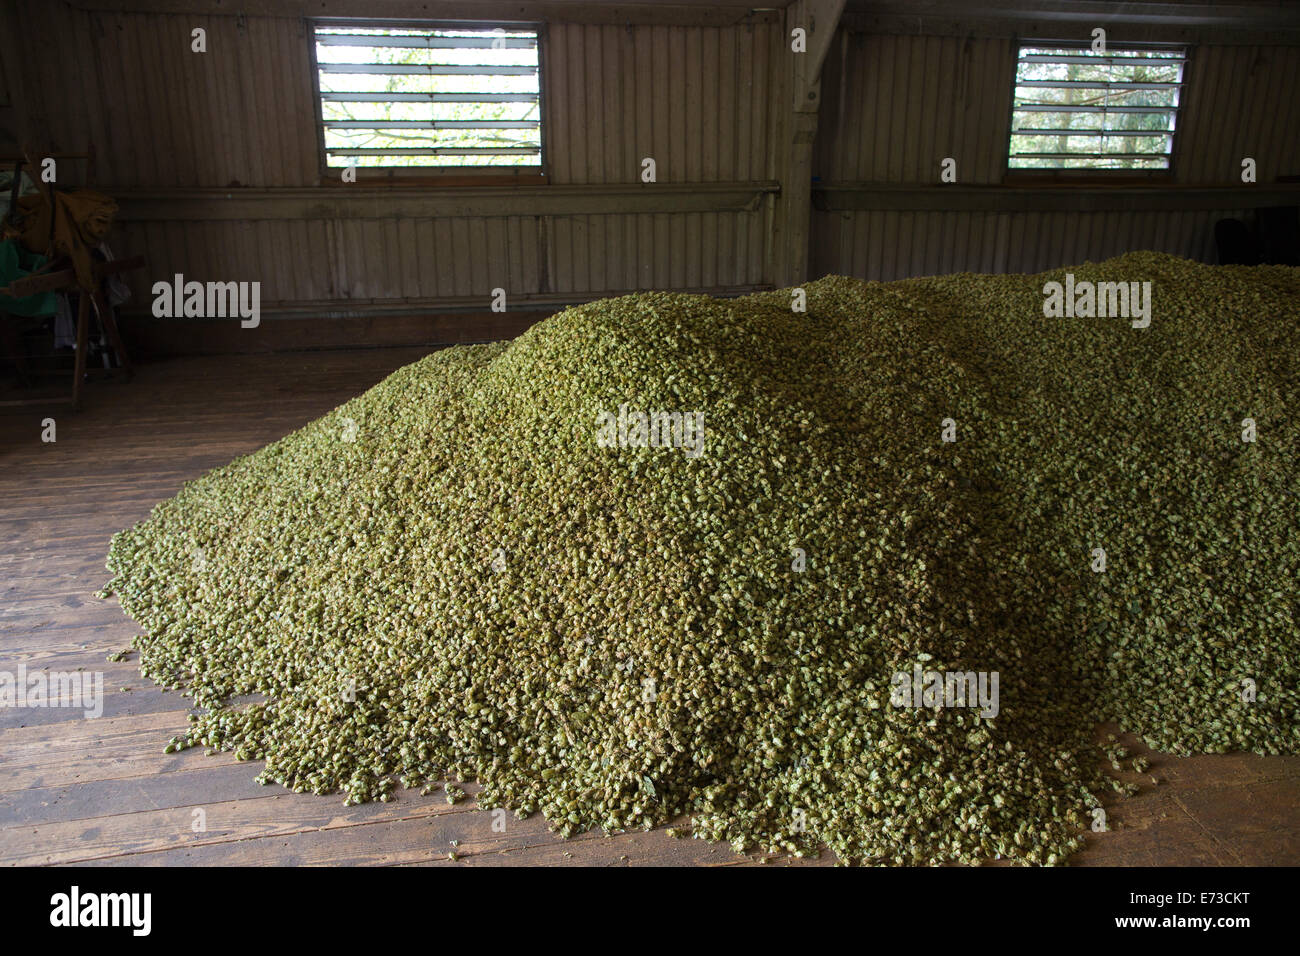 Hops being harvested ready to be exported to breweries for beer production, Hampton Estate, Surrey Hills, England, - Stock Image